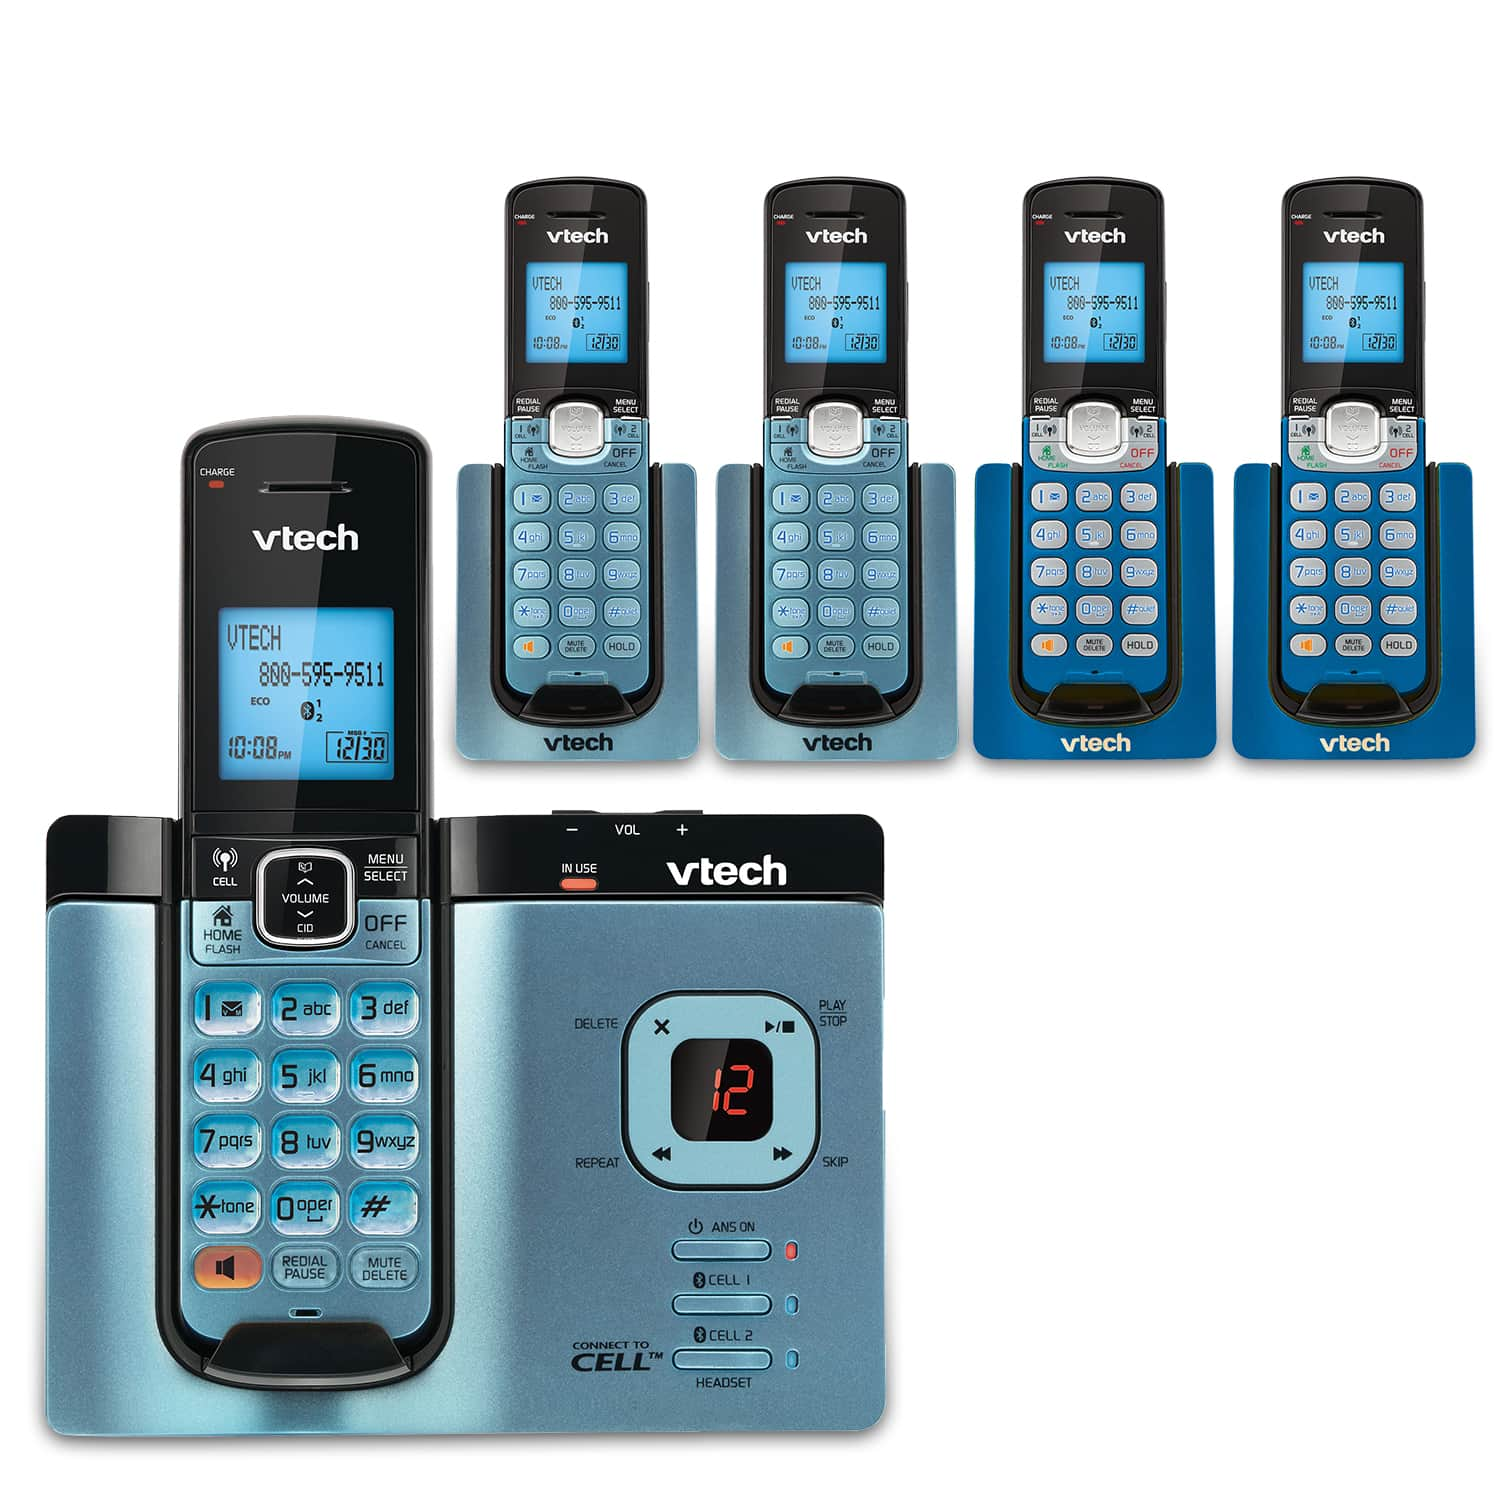 vtech connect to cell manual